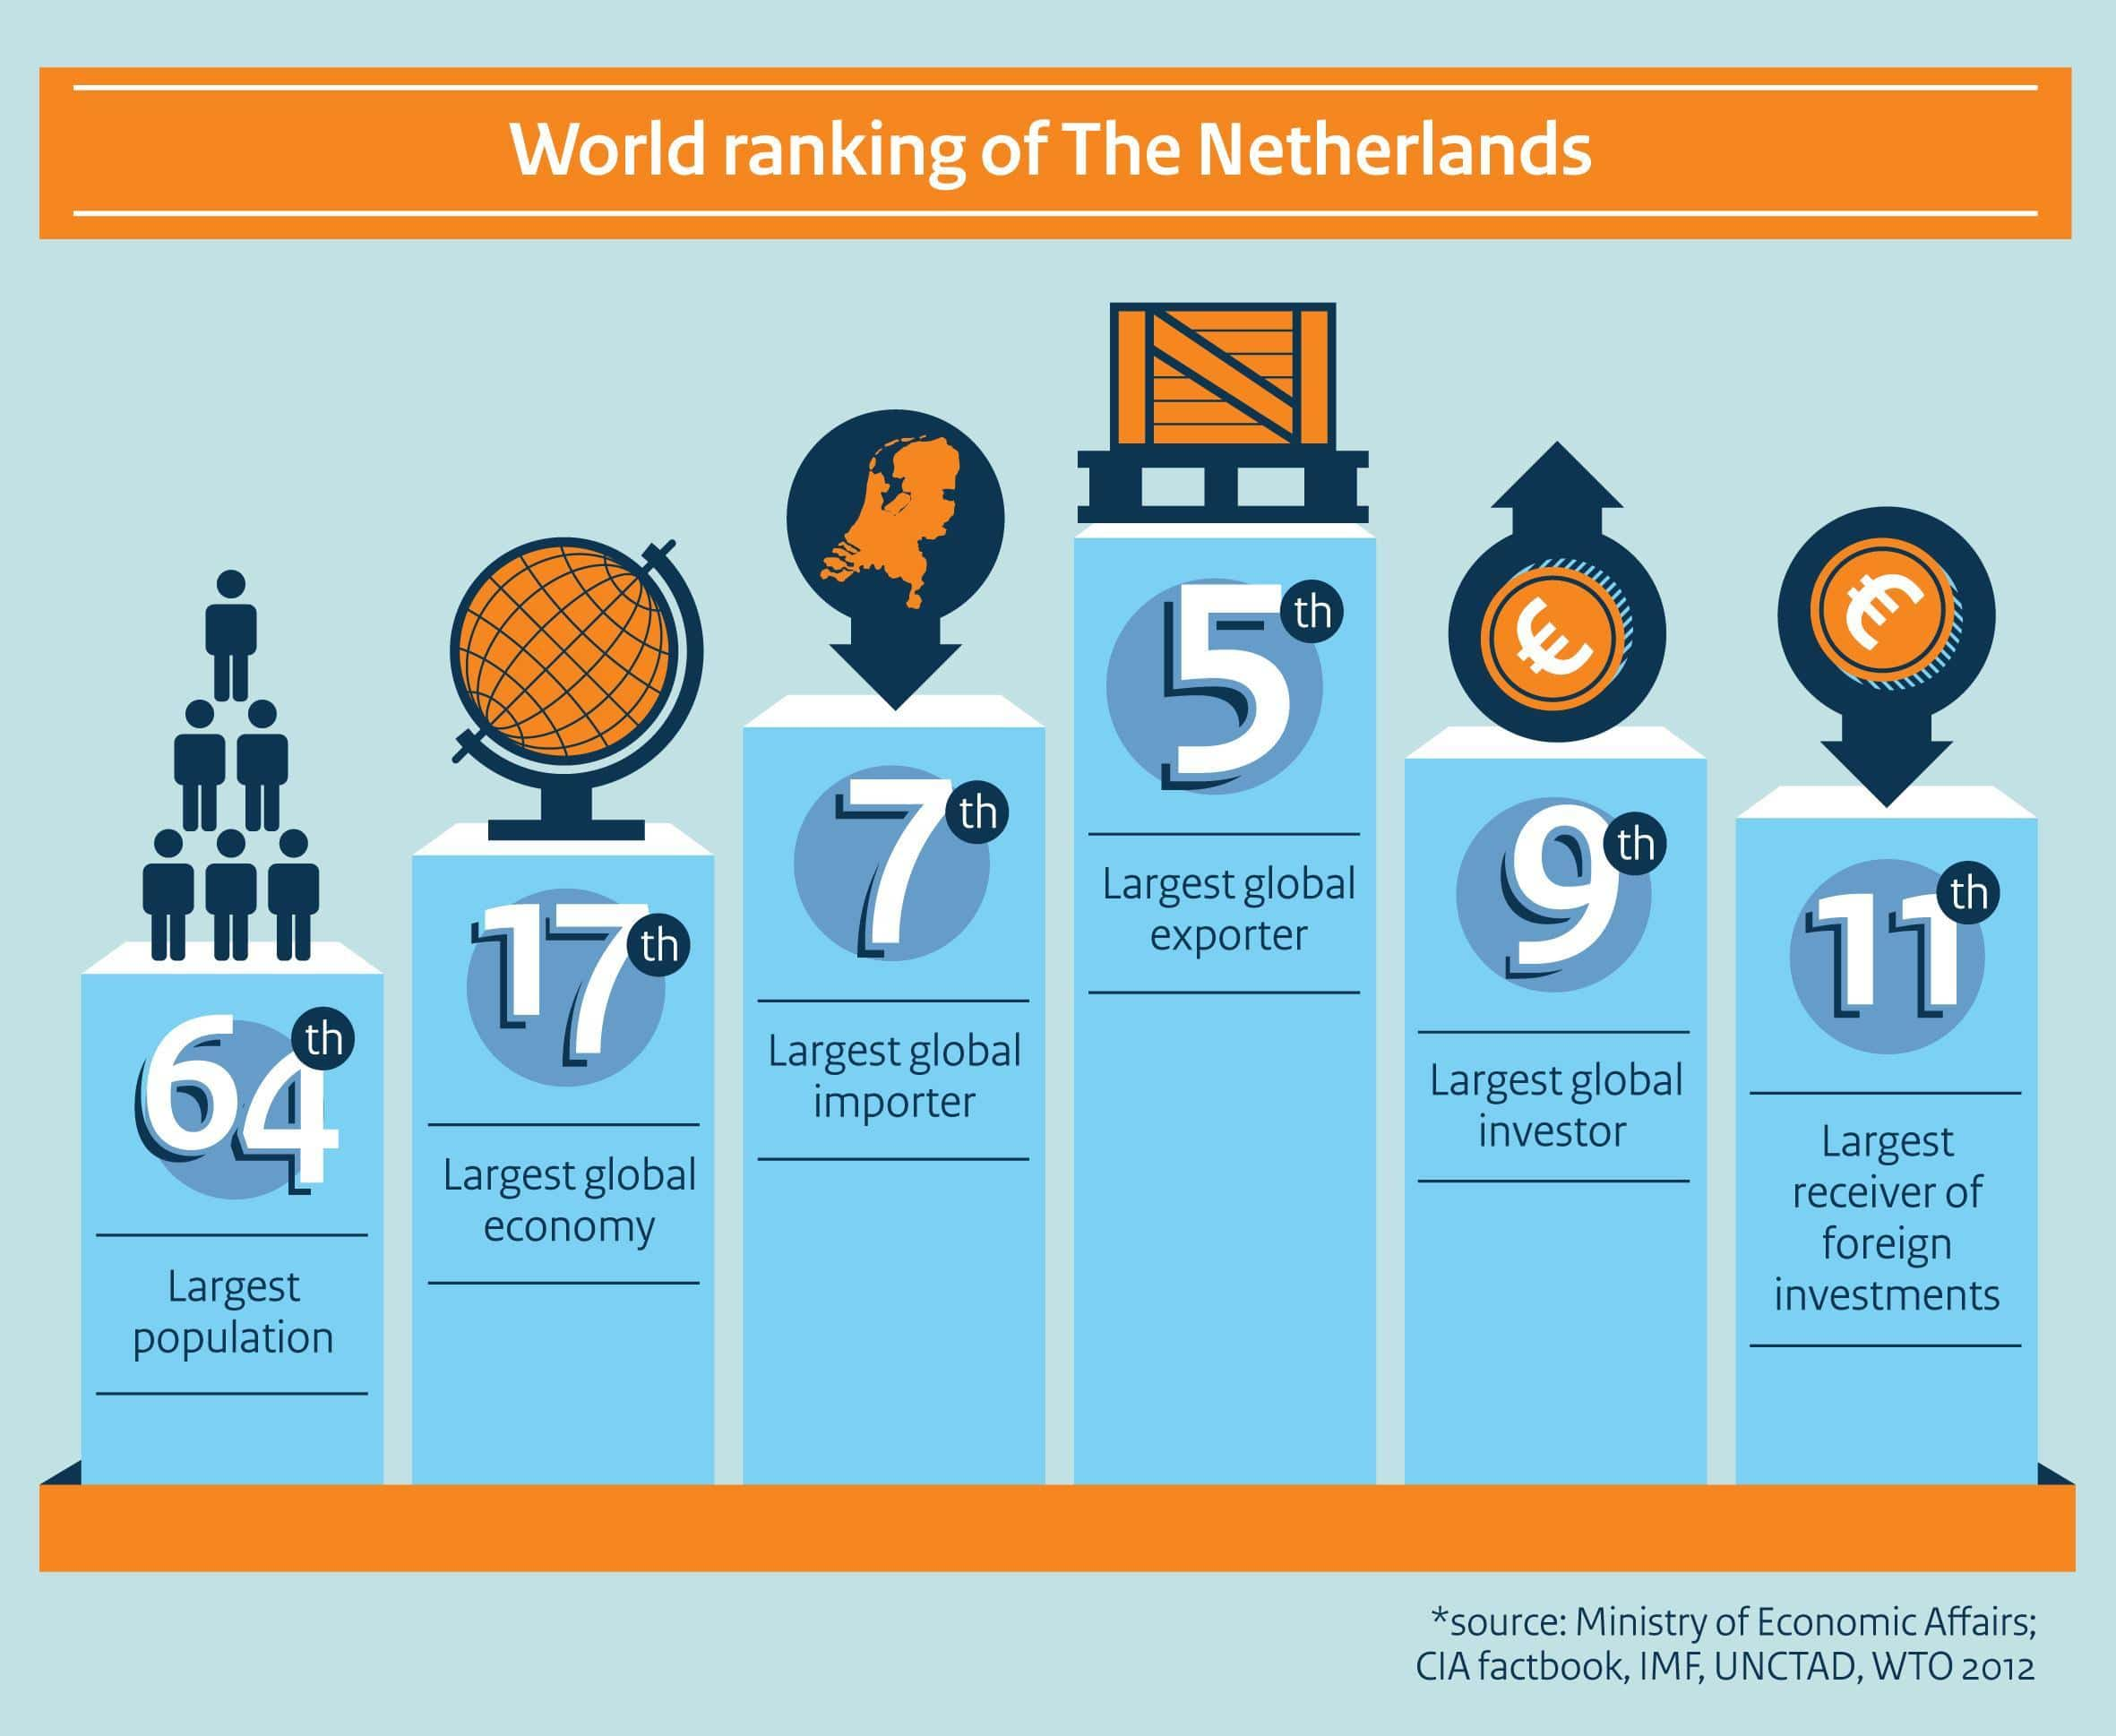 most popular dating site in the netherlands